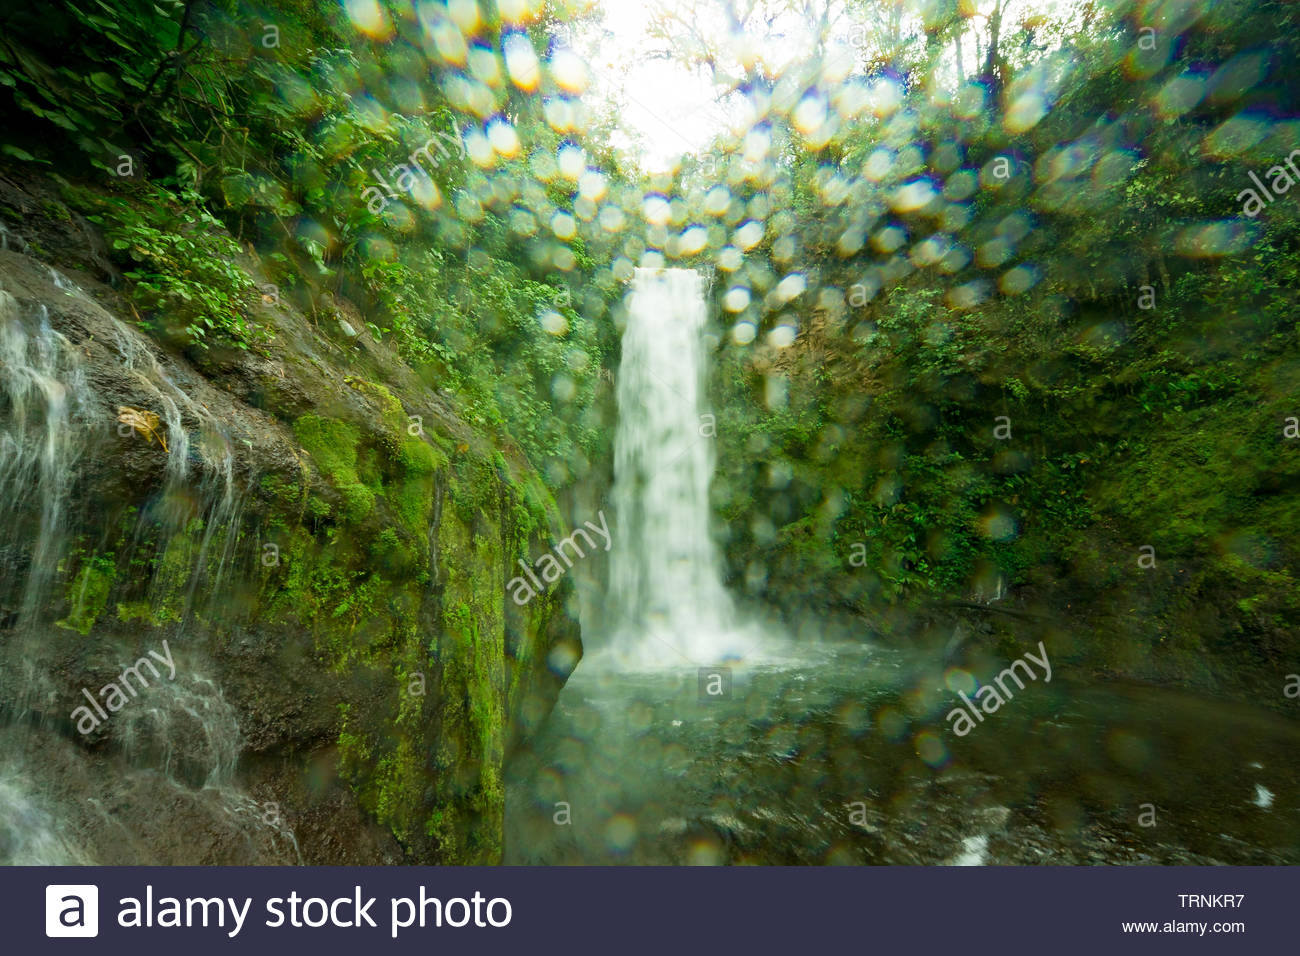 La Paz Waterfall gardens, with green tropical forest in